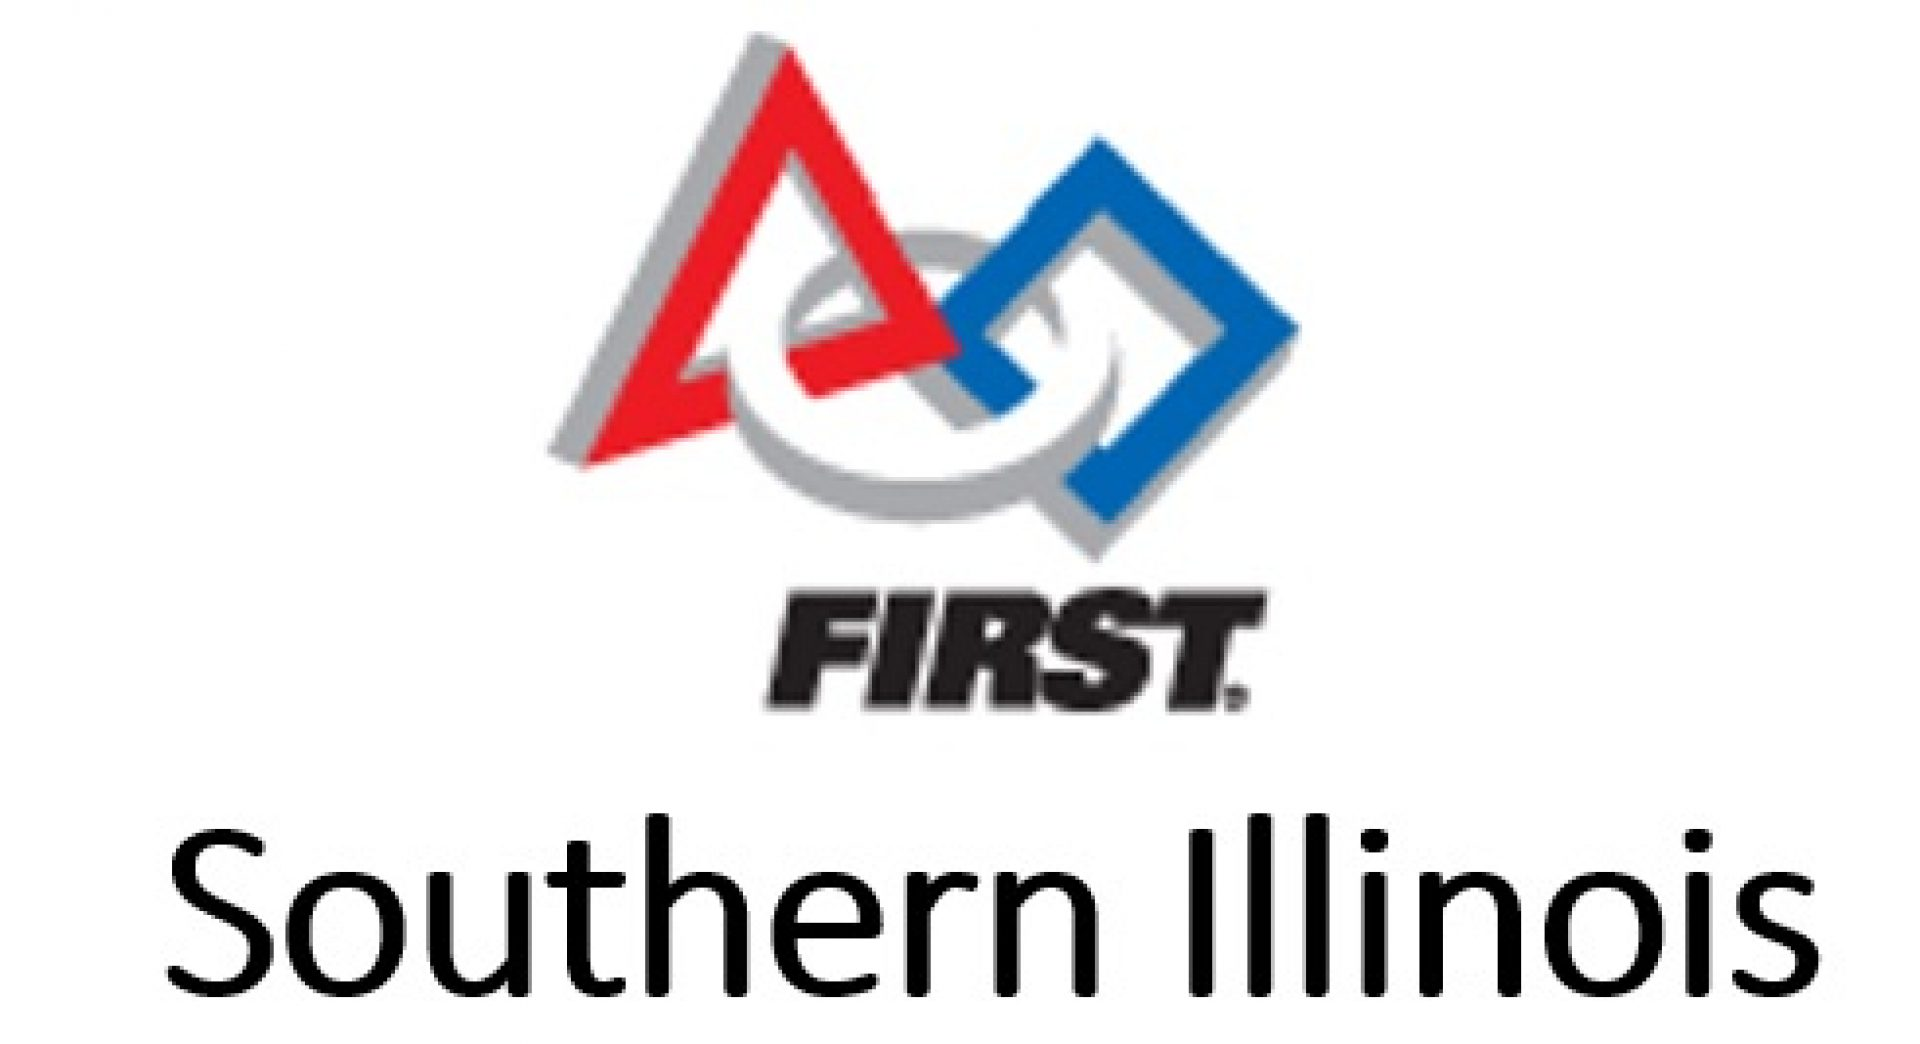 Southern Illinois FIRST